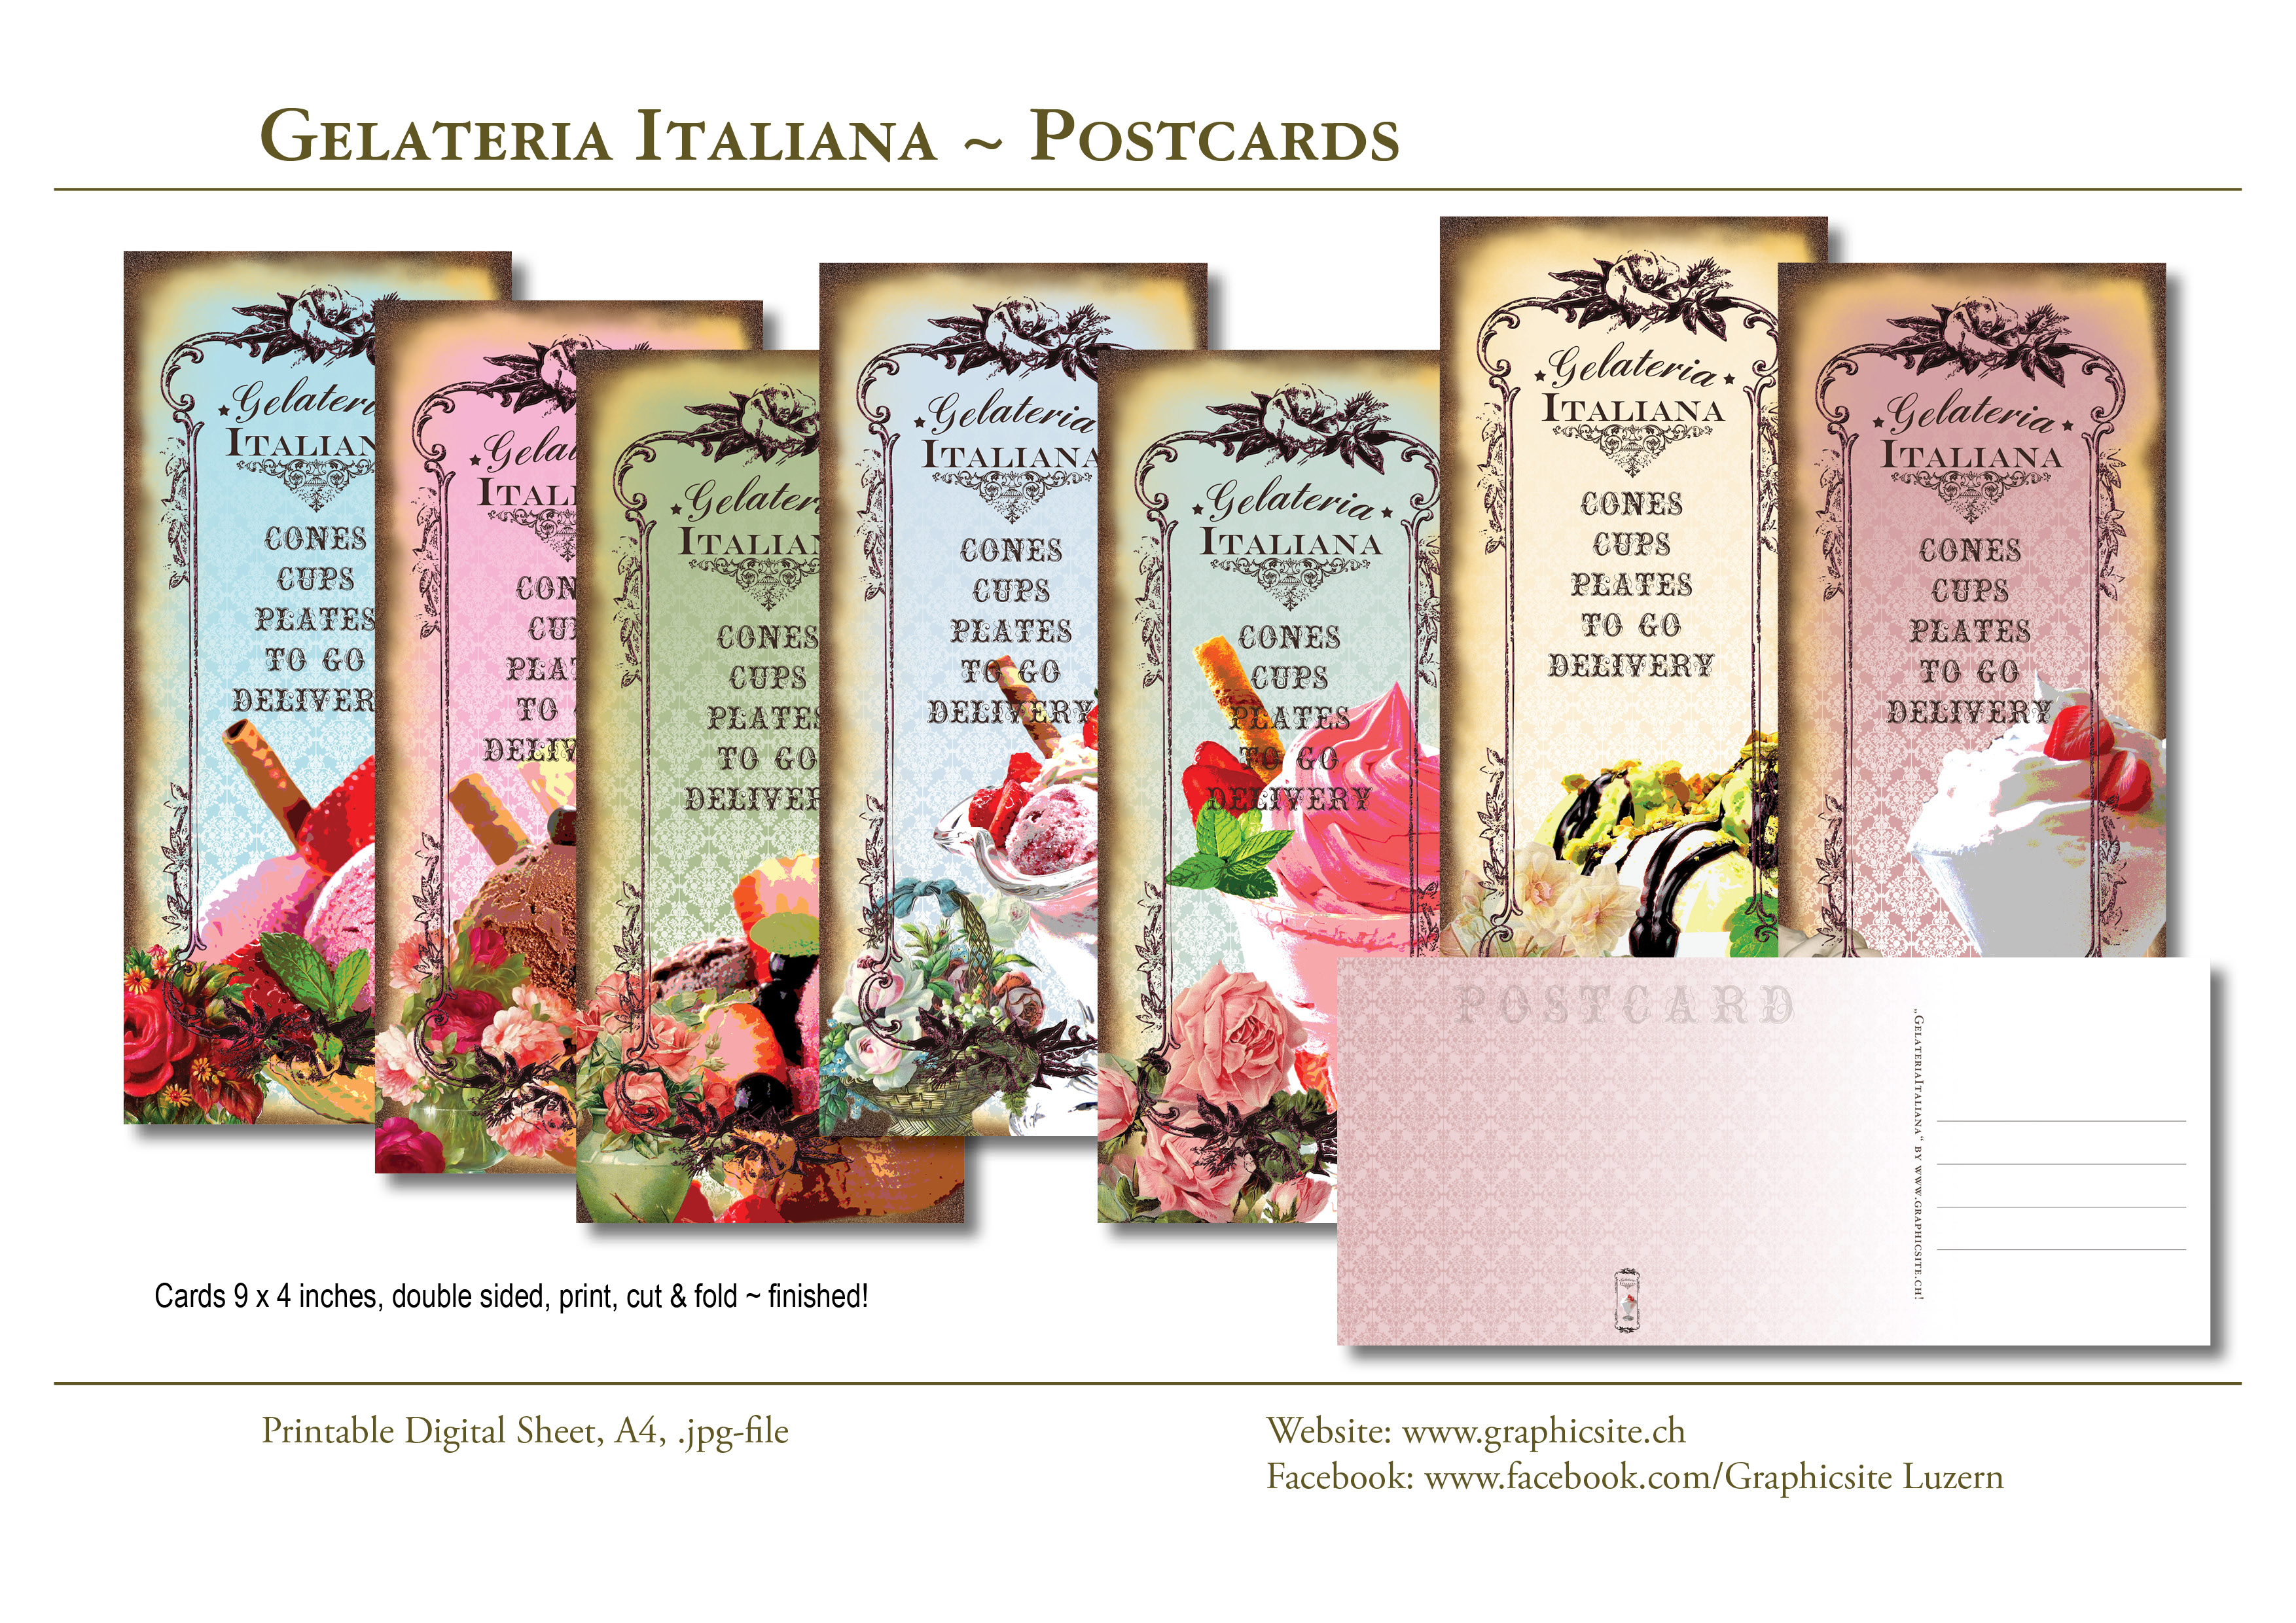 Printable Digital Sheets - Cards 9x4 inches - Gelateria Italiana, #icecream, #dessert, #cards, #postcards, #greetingcards, #menu, #scrapbooking, #papergoods,